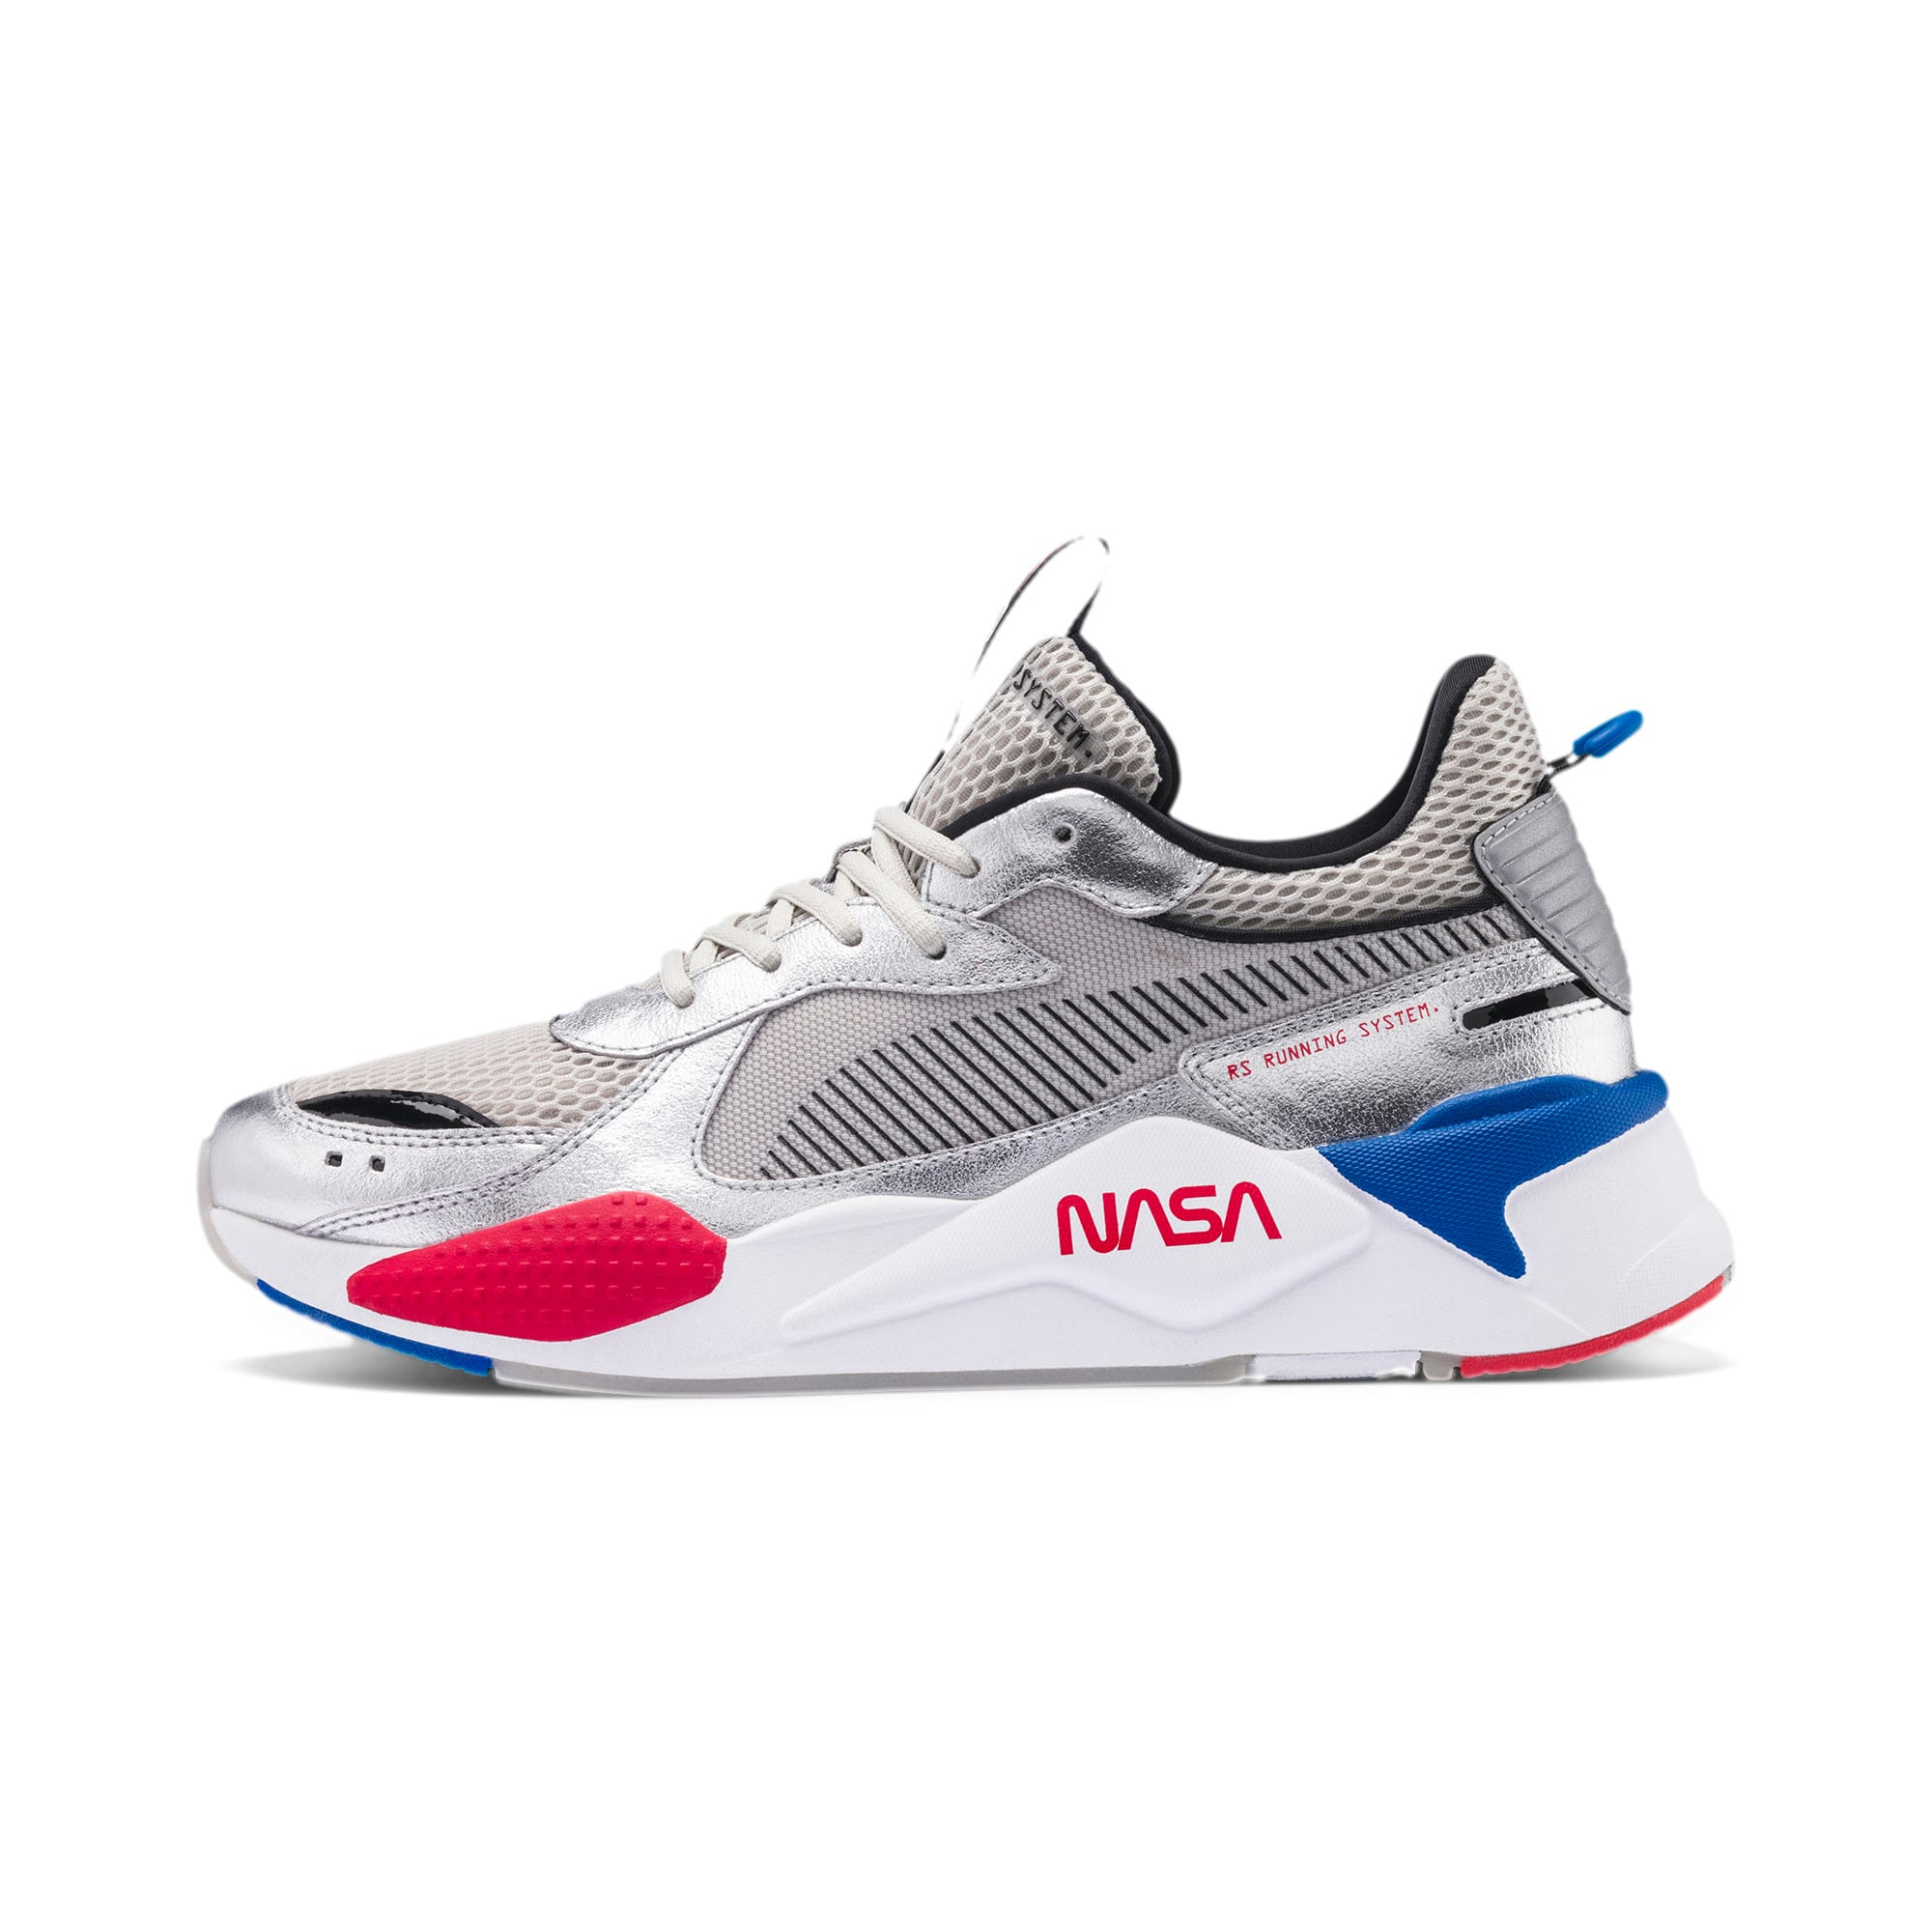 Thumbnail 1 of RS-X Space Explorer Sneaker, Puma Silver-Gray Violet, medium